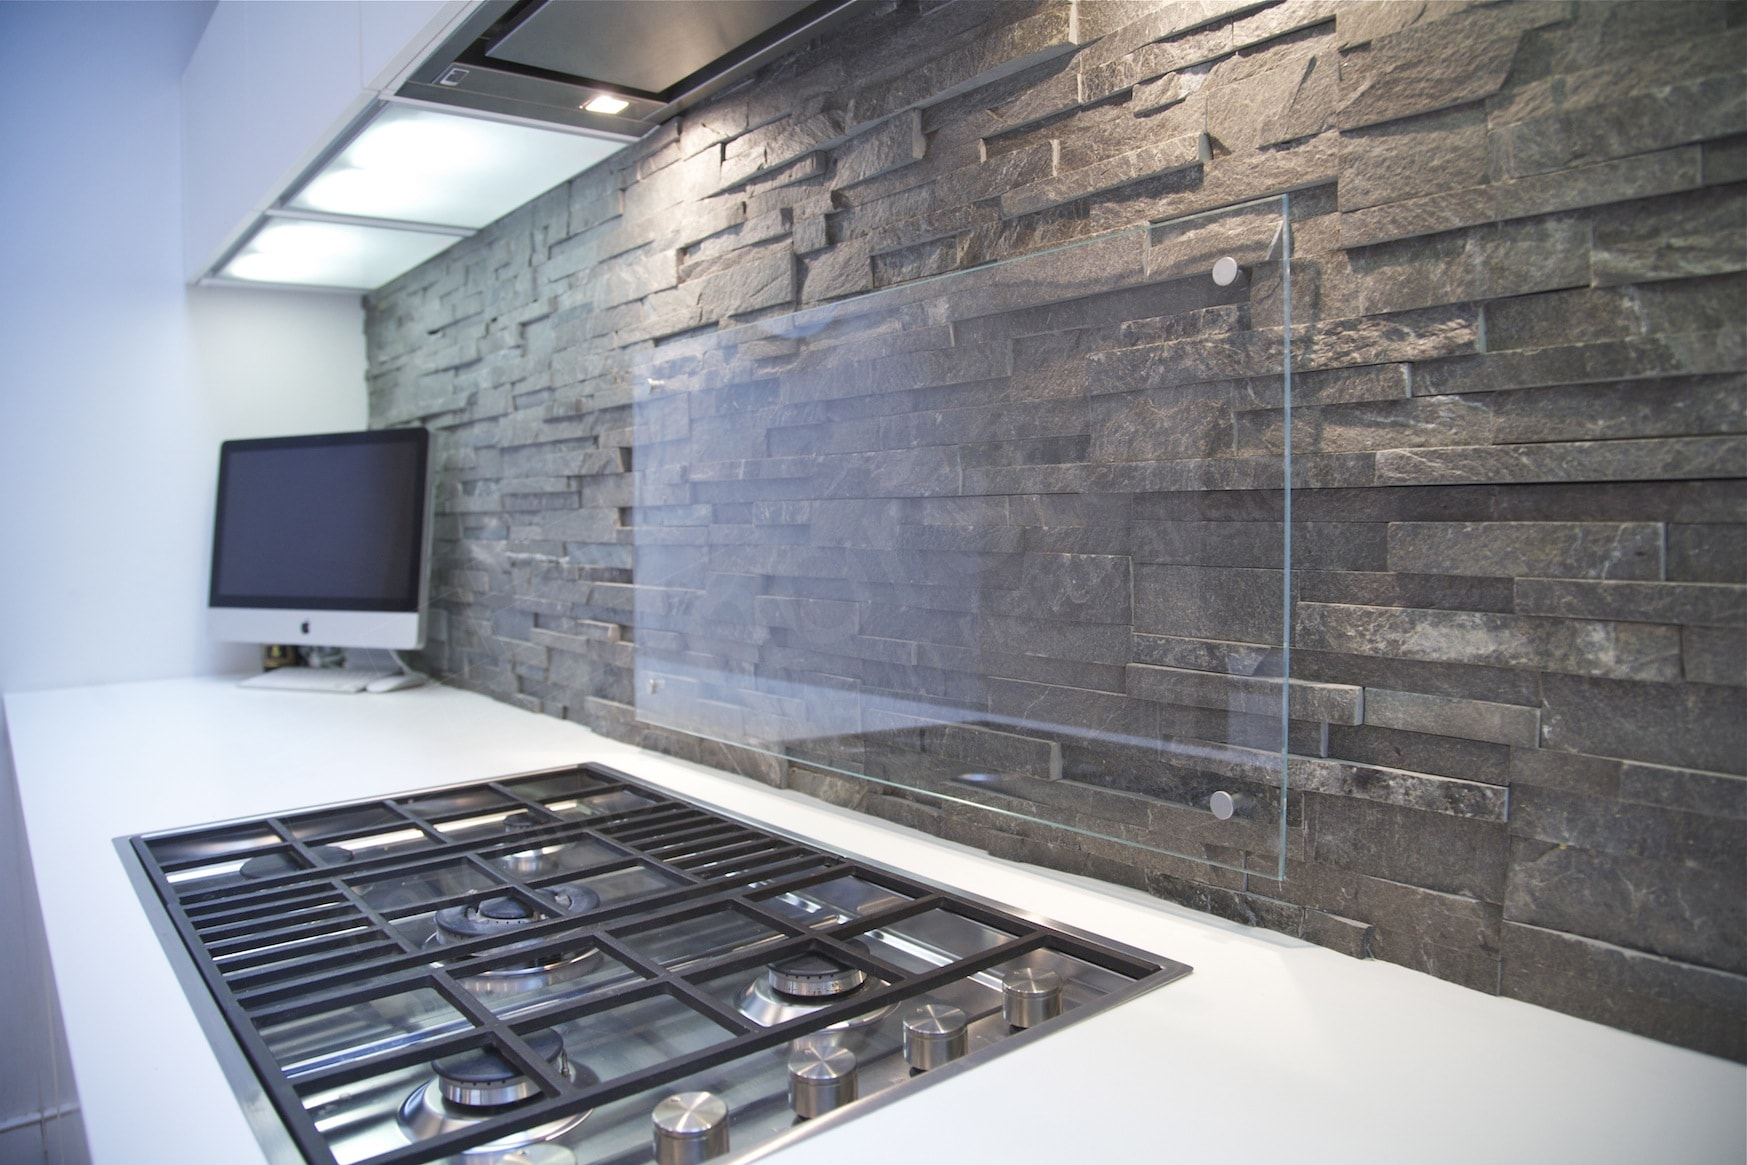 Norstone Stacked Stone Charcoal Rock Panels on a modern backsplash with a glass splatter guard